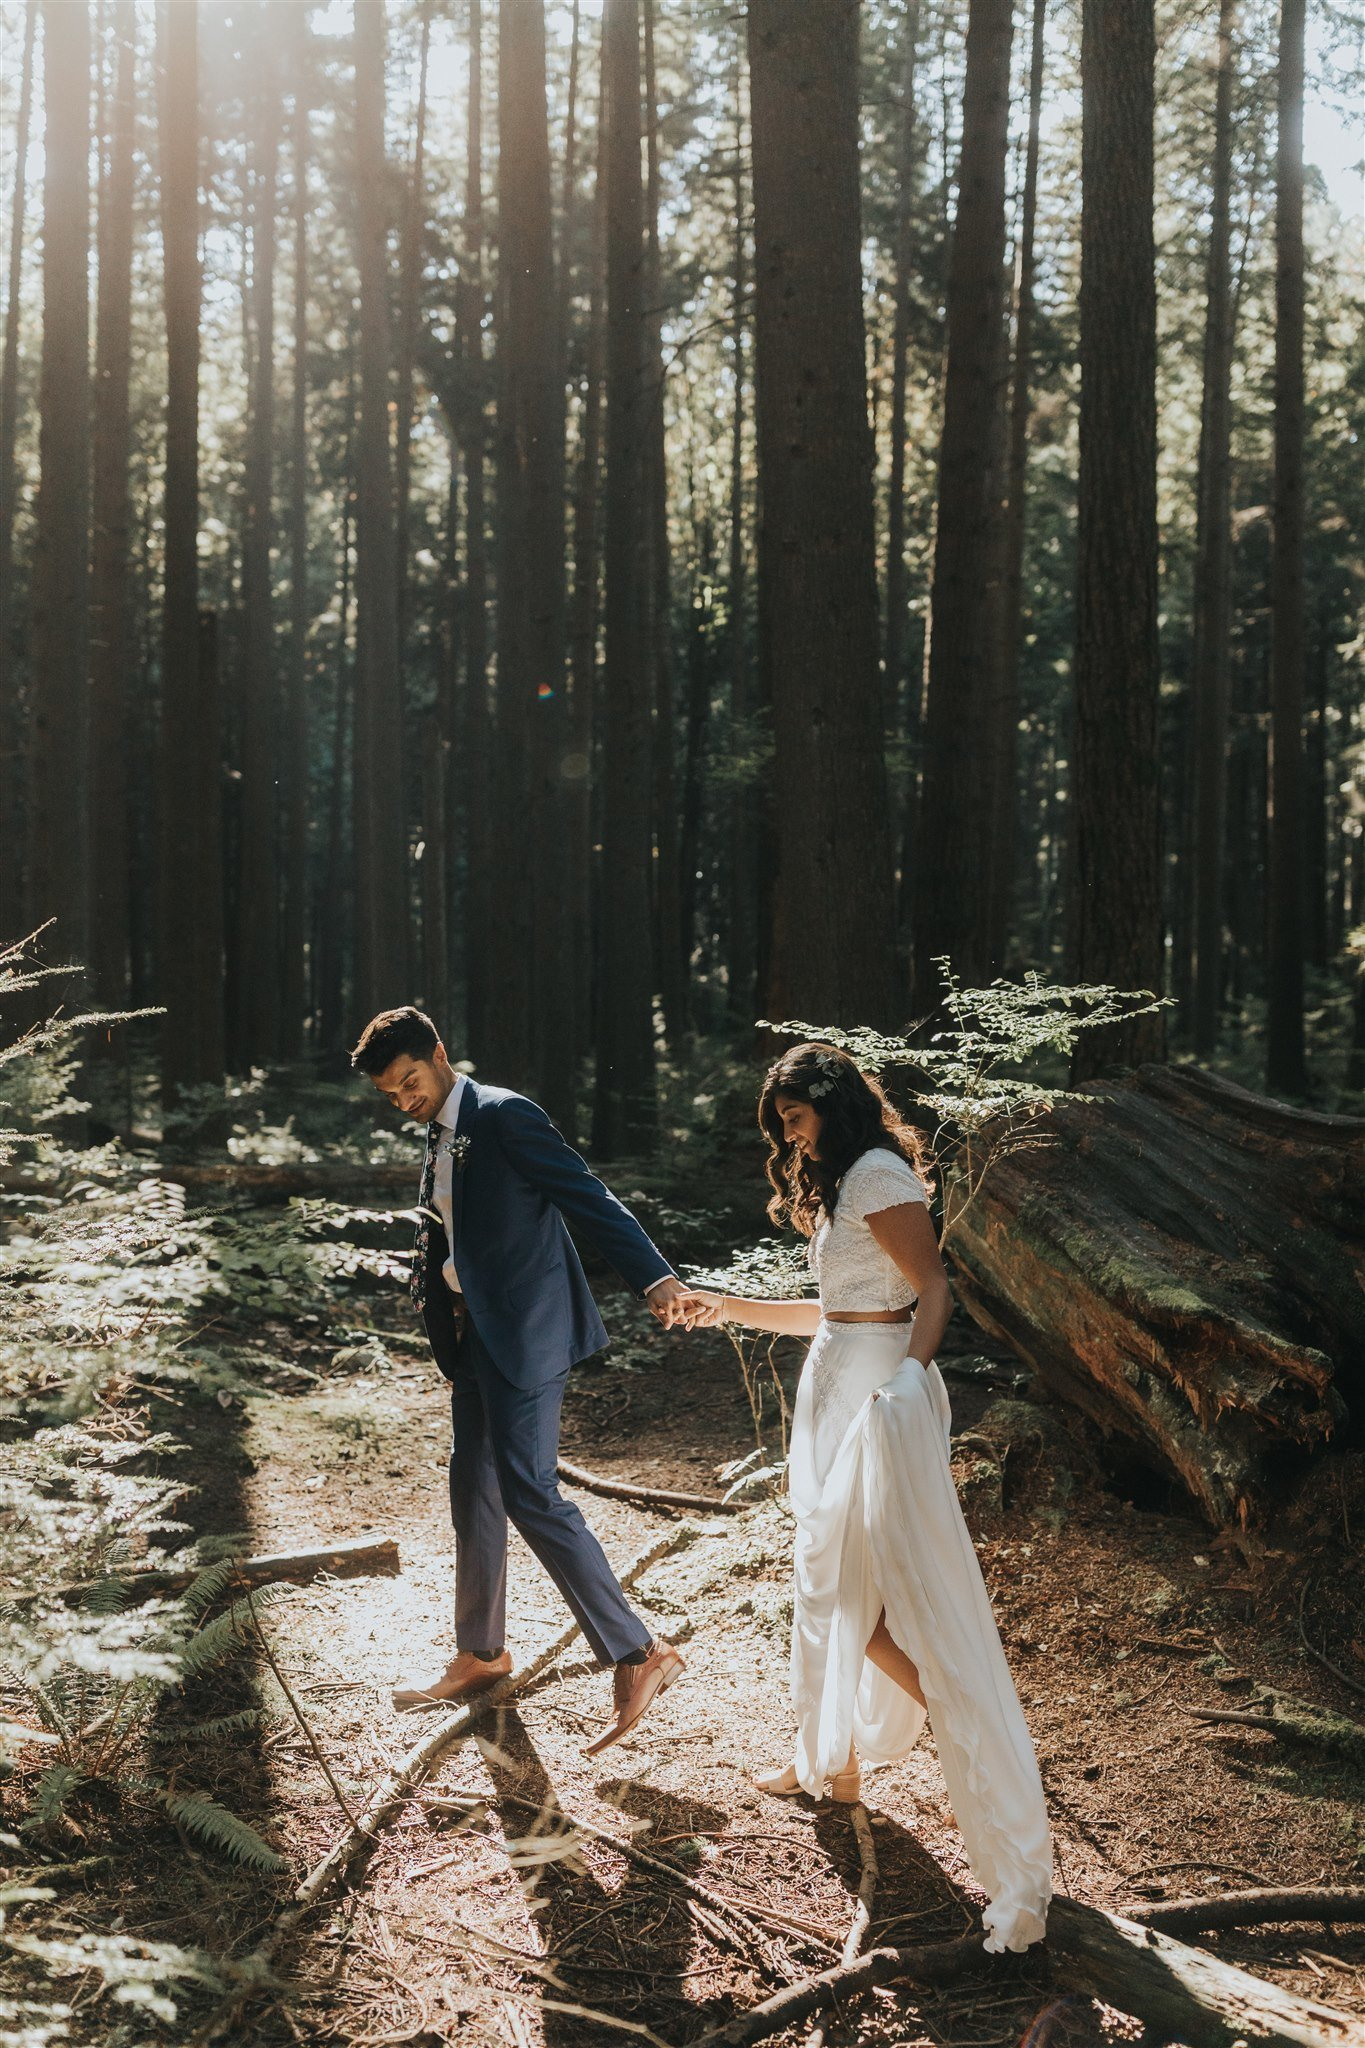 bride and groom walking through magical forest light